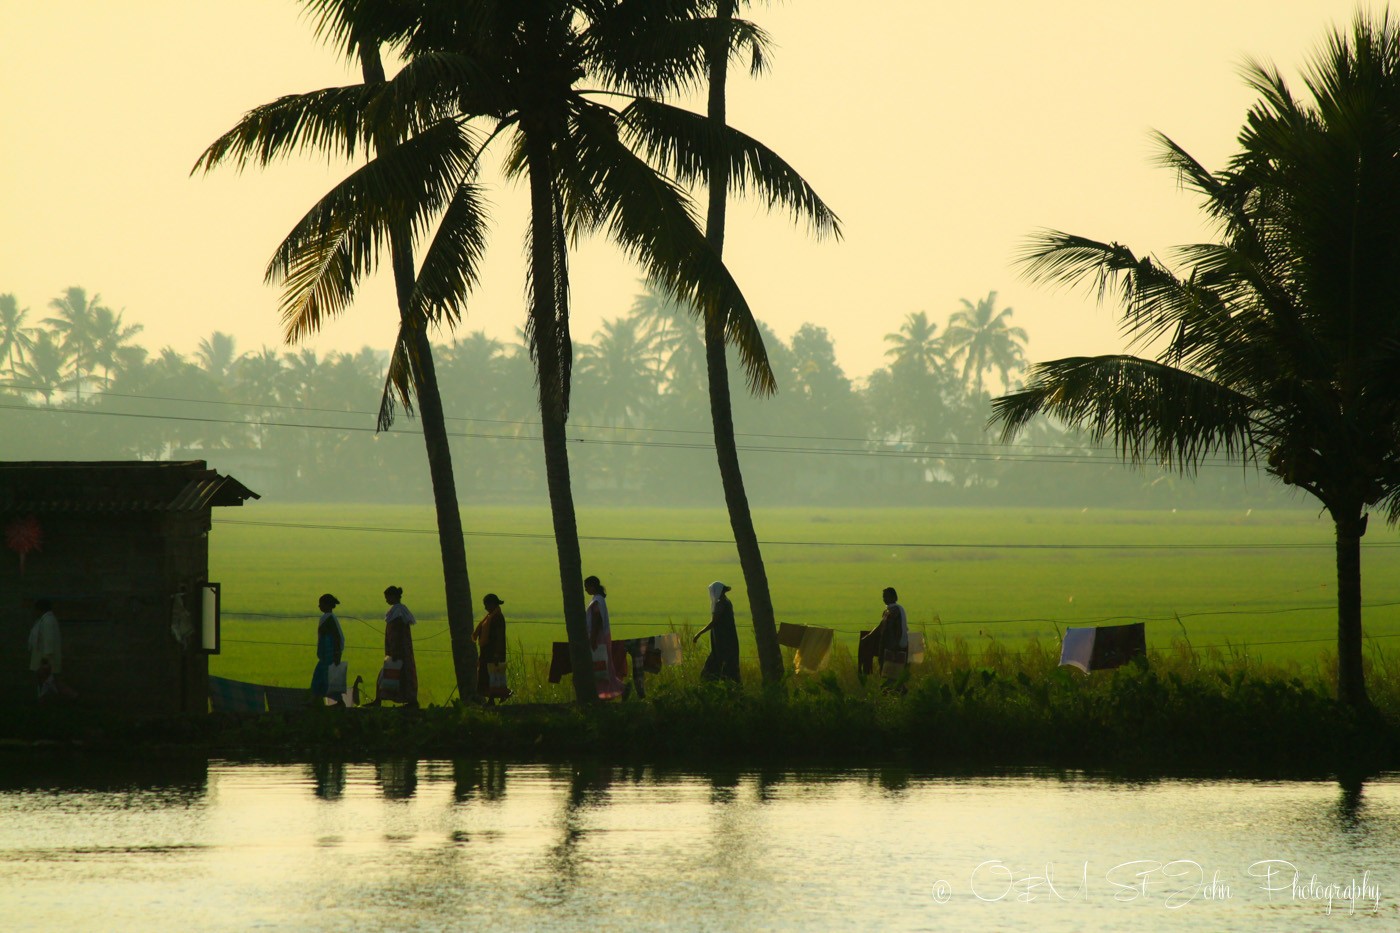 Local women making their way home along the river. Kerala Backwaters. India